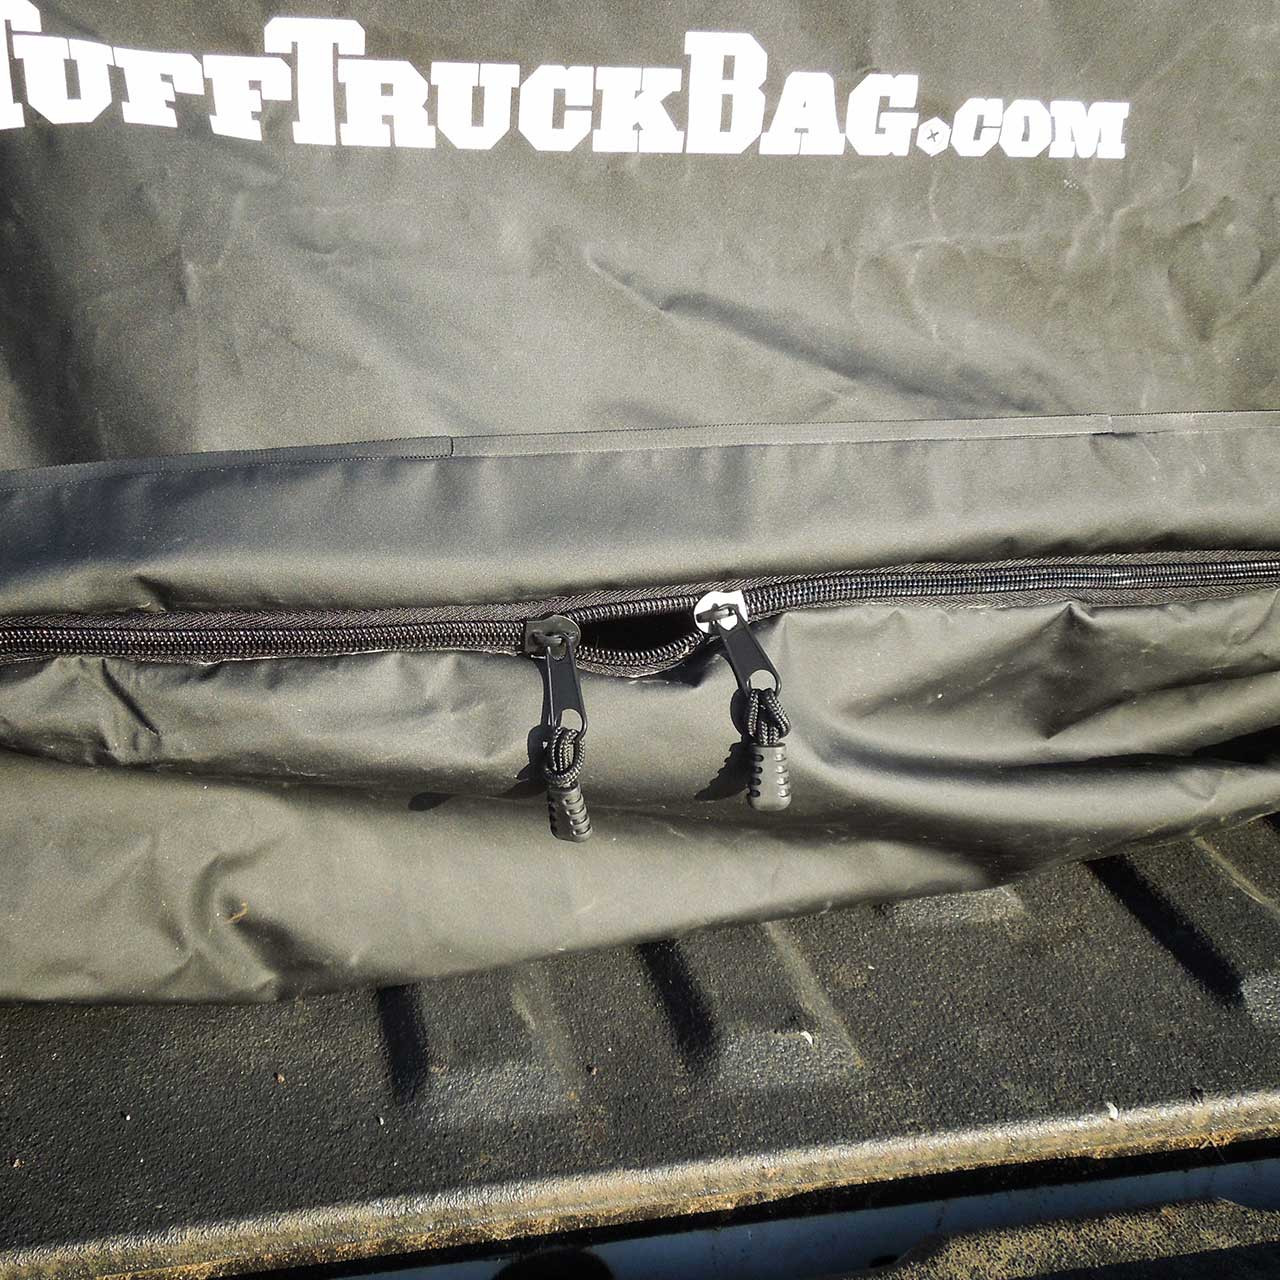 Heavy gauge zipper on the end of the black waterproof Tuff Truck Bag. Zipper on end closes to secure luggage and cargo